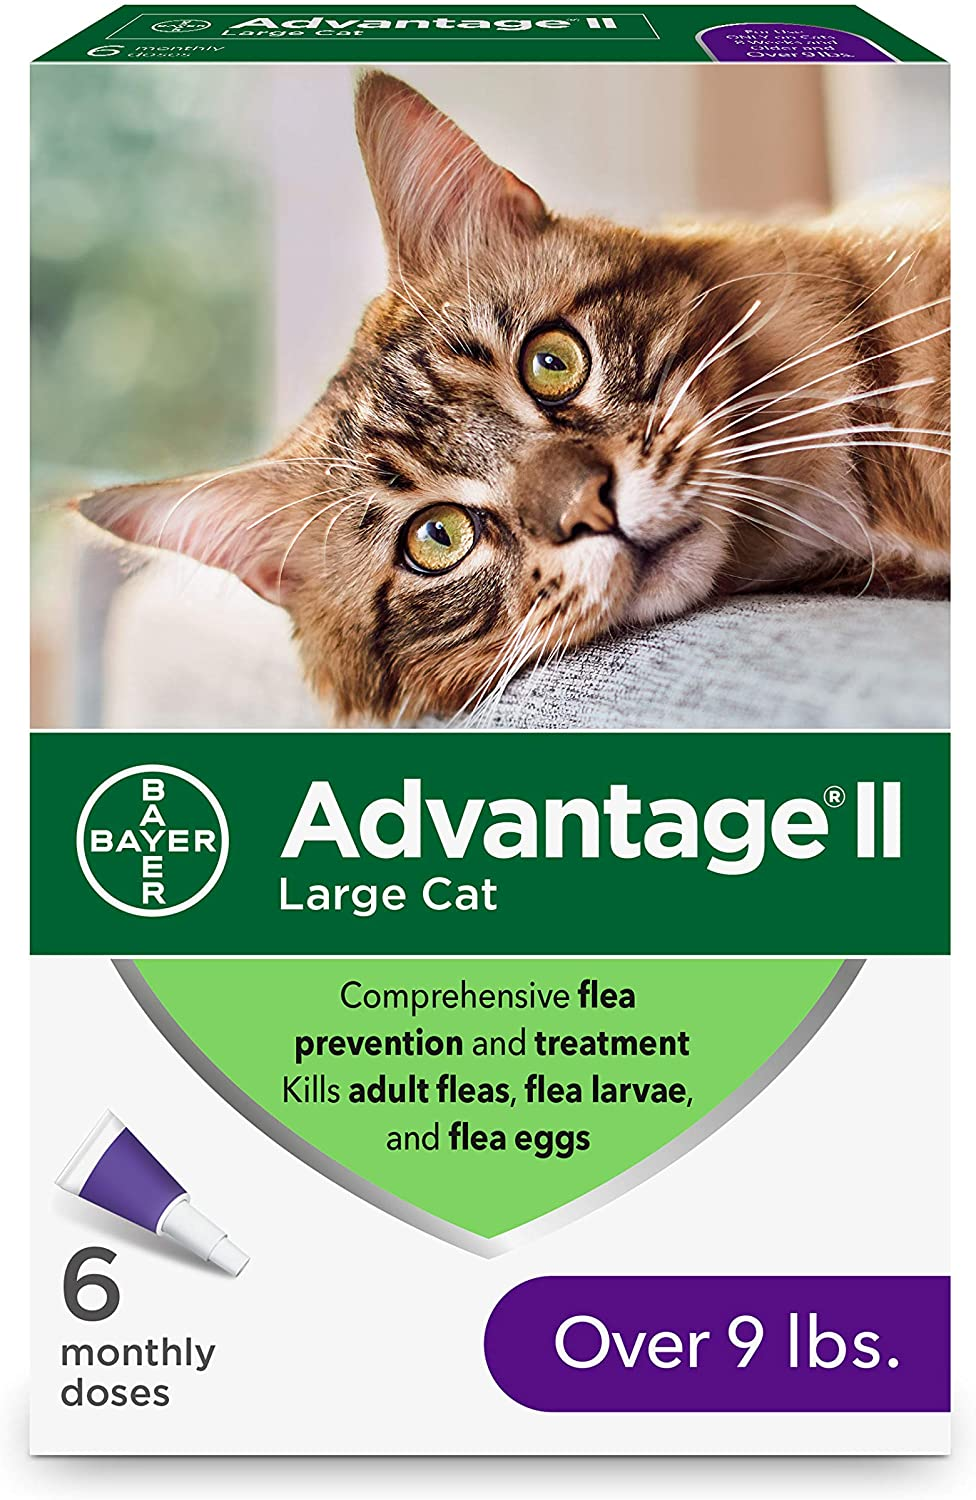 2. Bayer Advantage II Flea Control Treatment